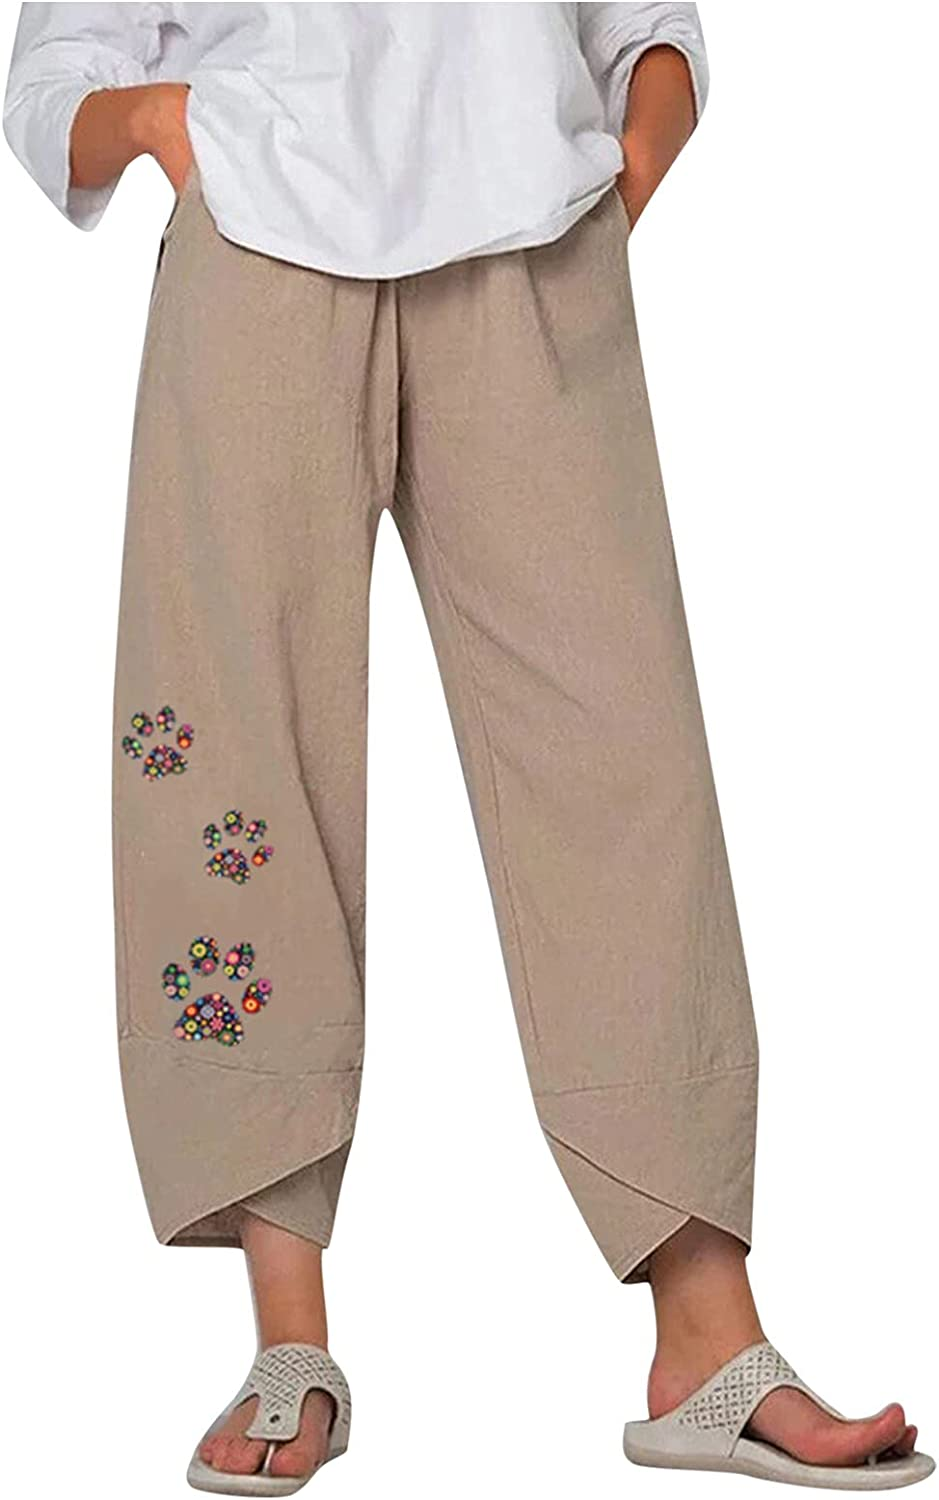 USYFAKGH Women's Casual Summer Cropped Pants, Elastic Waist Wide Leg Drawstring Comfy Loose Trousers Pants